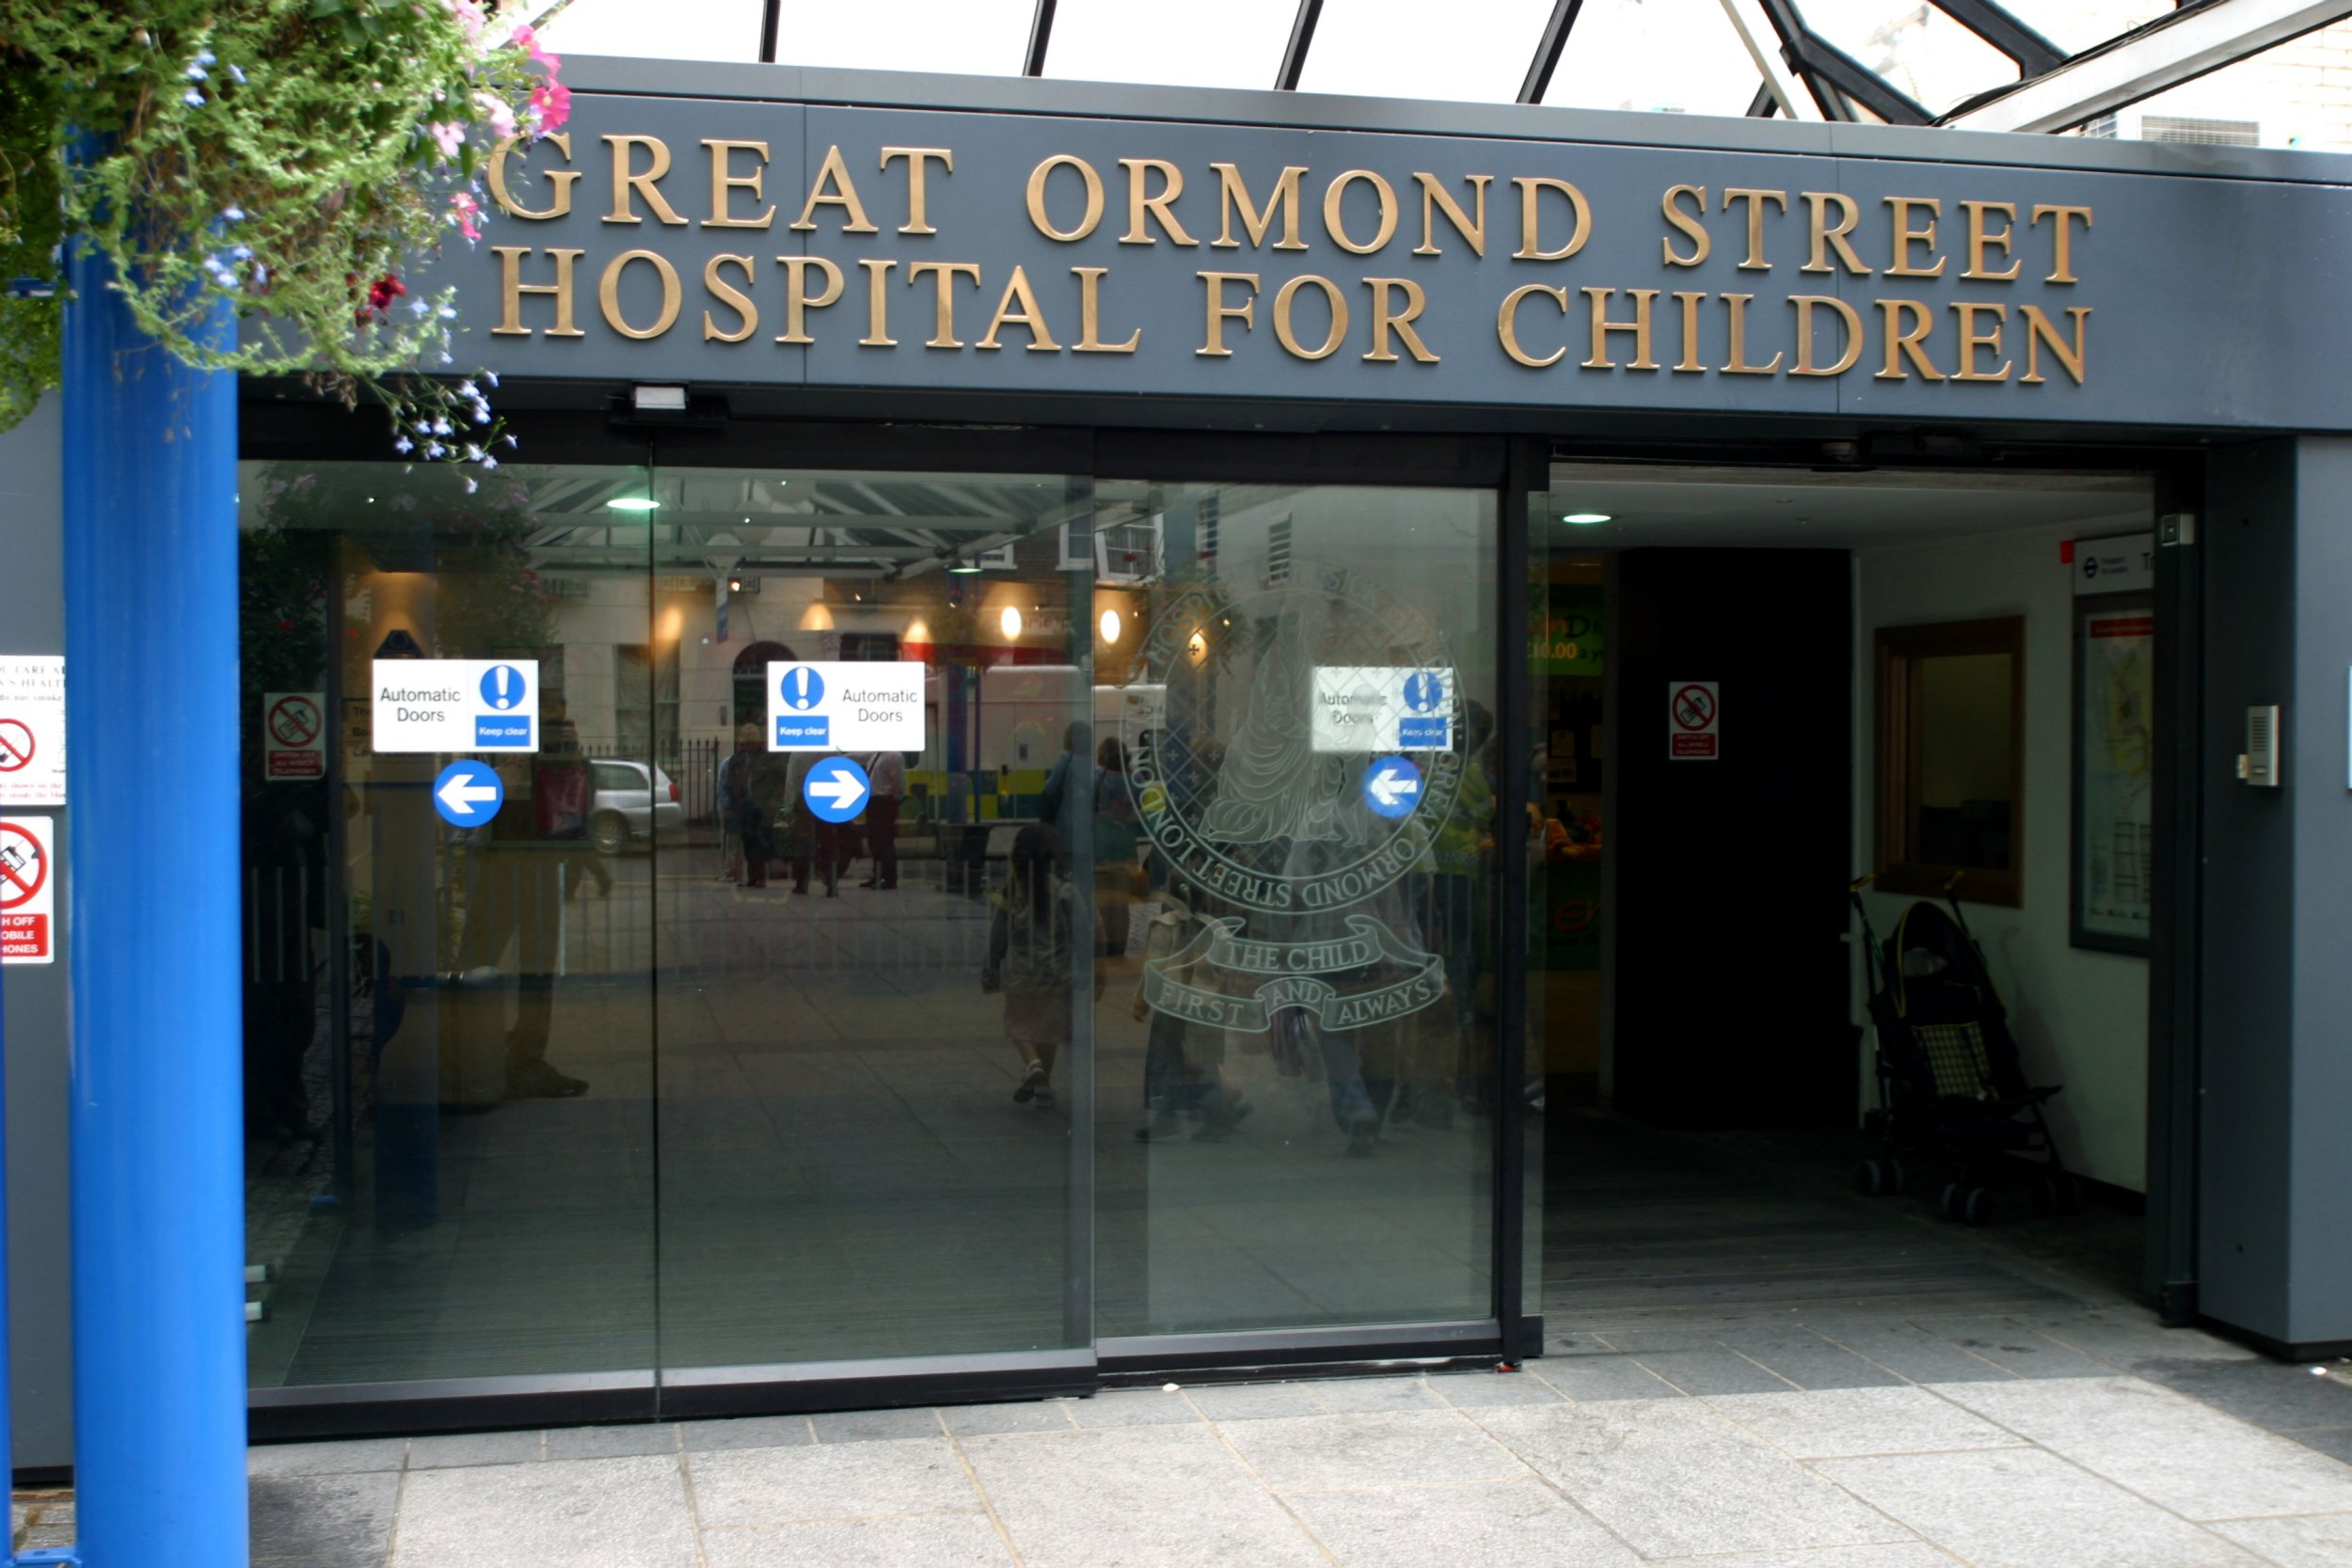 AM86WJ The entrance Great Ormond Street Hospital for Children London England